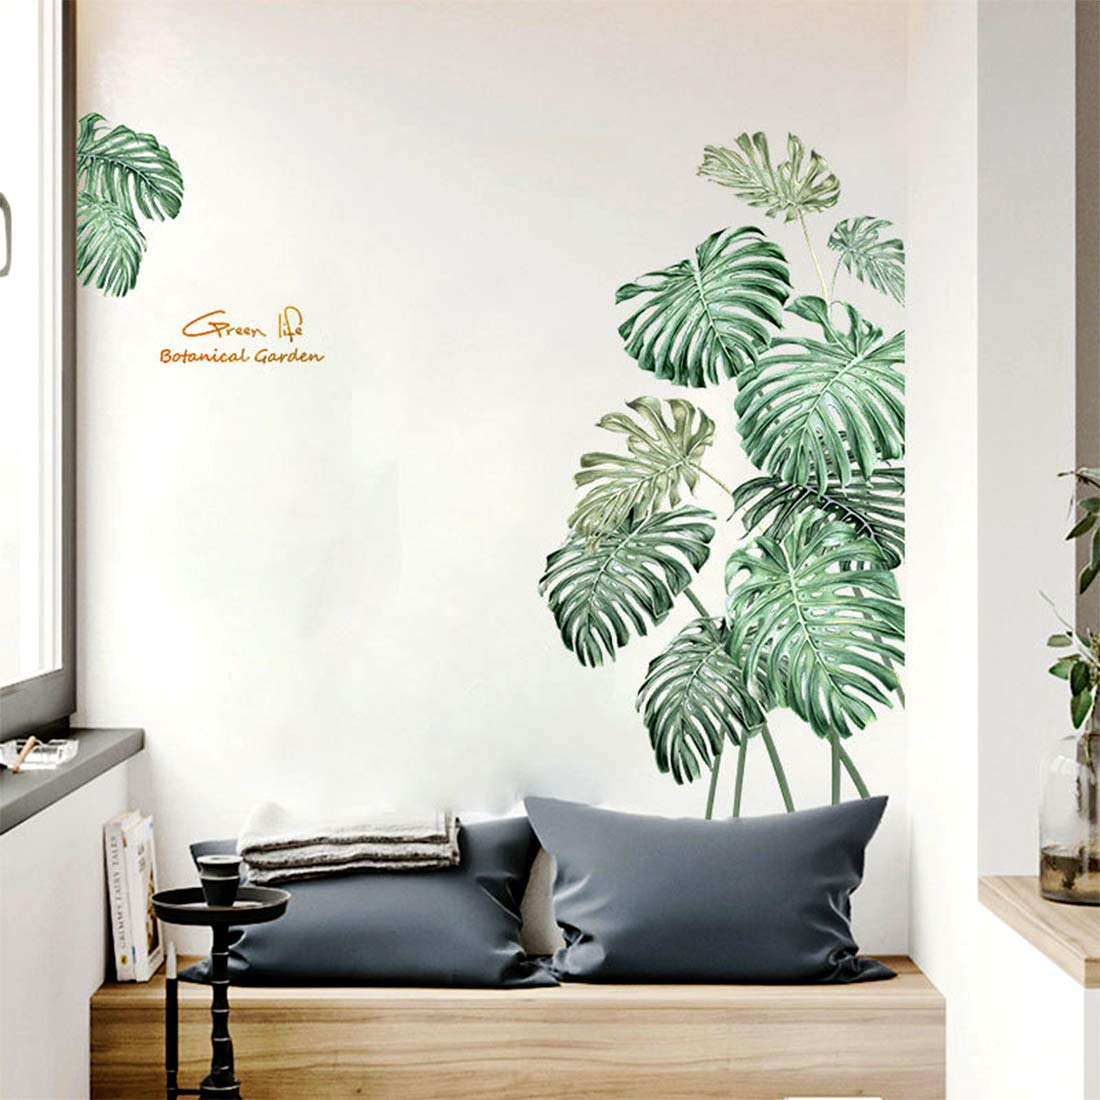 Tropical Plants Wall Decal Leaves Wall Decor Nature Palm Tree Leaf Plants Wall Stickers DIY Wall Art Murals for Nursery Room Bedroom Living Room Classroom Offices Home Decoration TV Wall Door Decor